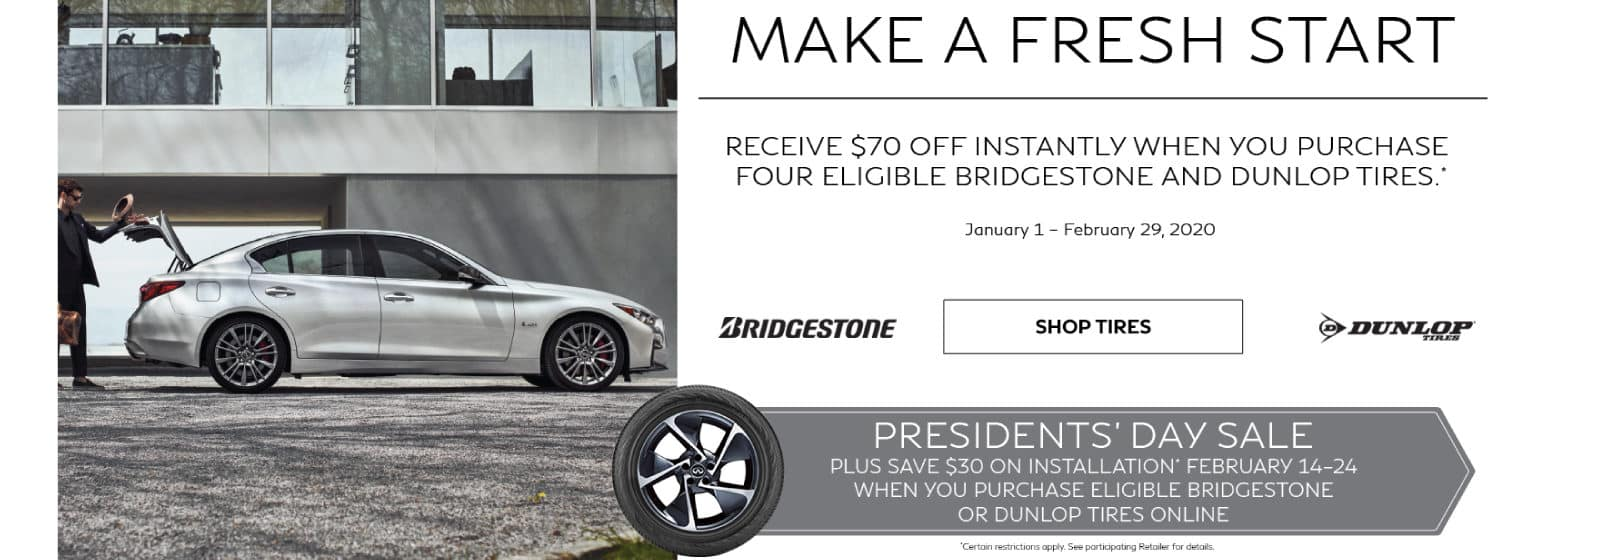 President's Day Tire Offer. Receive $70 off instantly when you purchase four eligible Bridgestone and Dunlop Tires. Save $30 on installation February 14-24 when you purchase eligible tires online. Certain restrictions apply. See retailer for complete details.